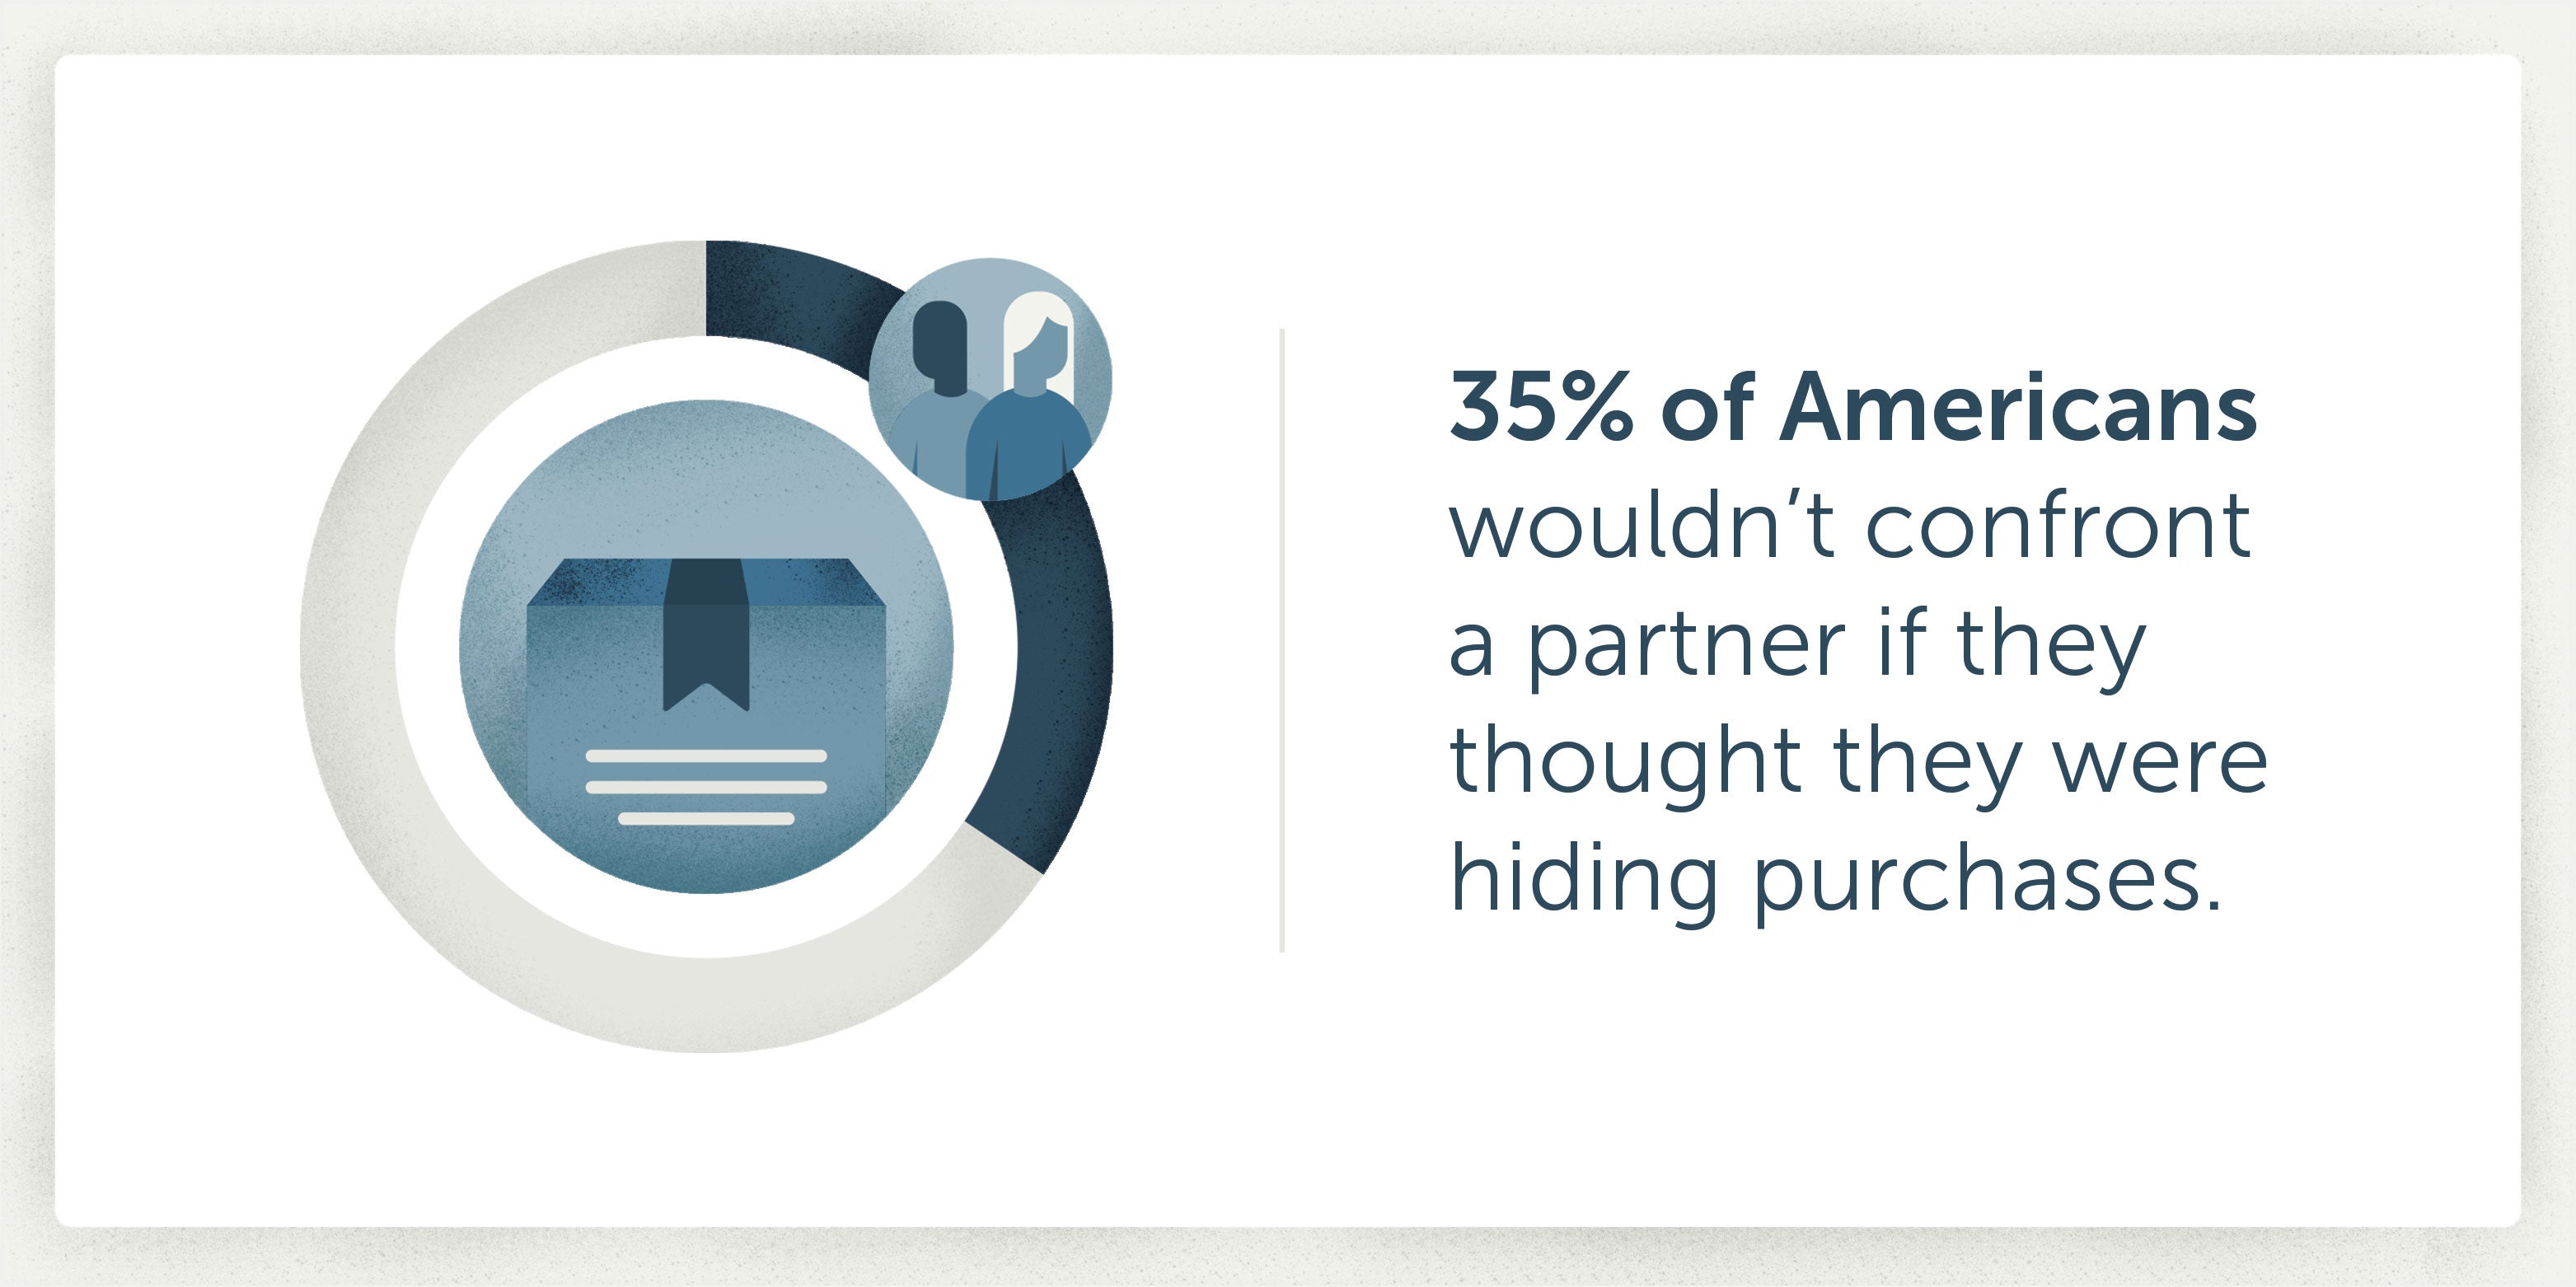 35% of Americans wouldn't confront a partner if they thought they were hiding purchases